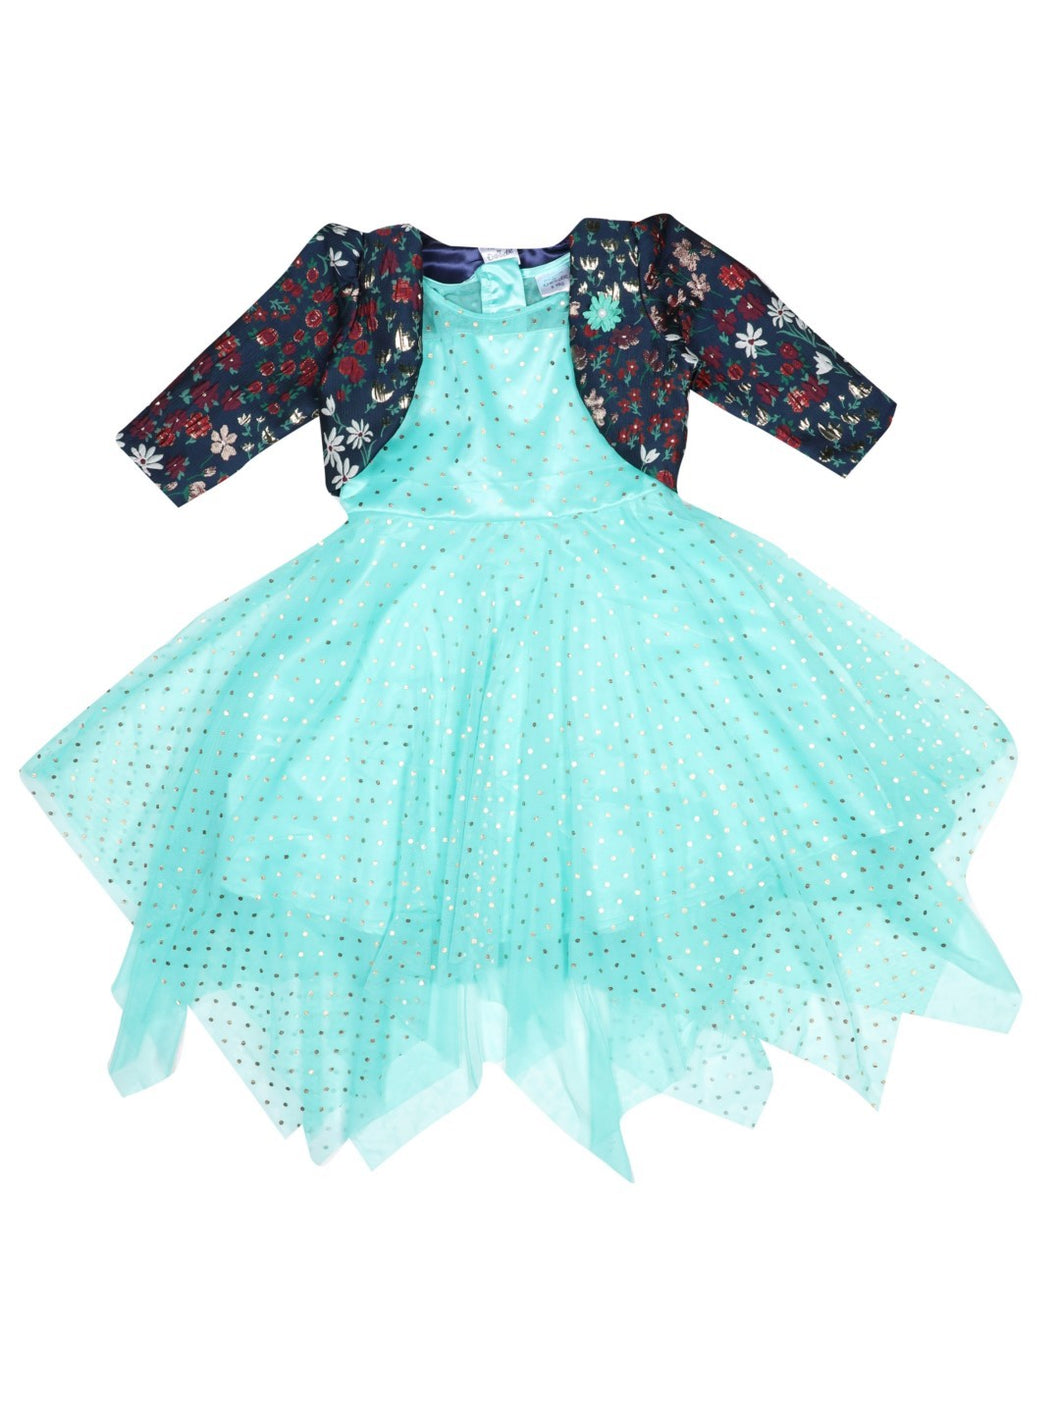 Foil Printed kerchief Dress with Stylish Shrug